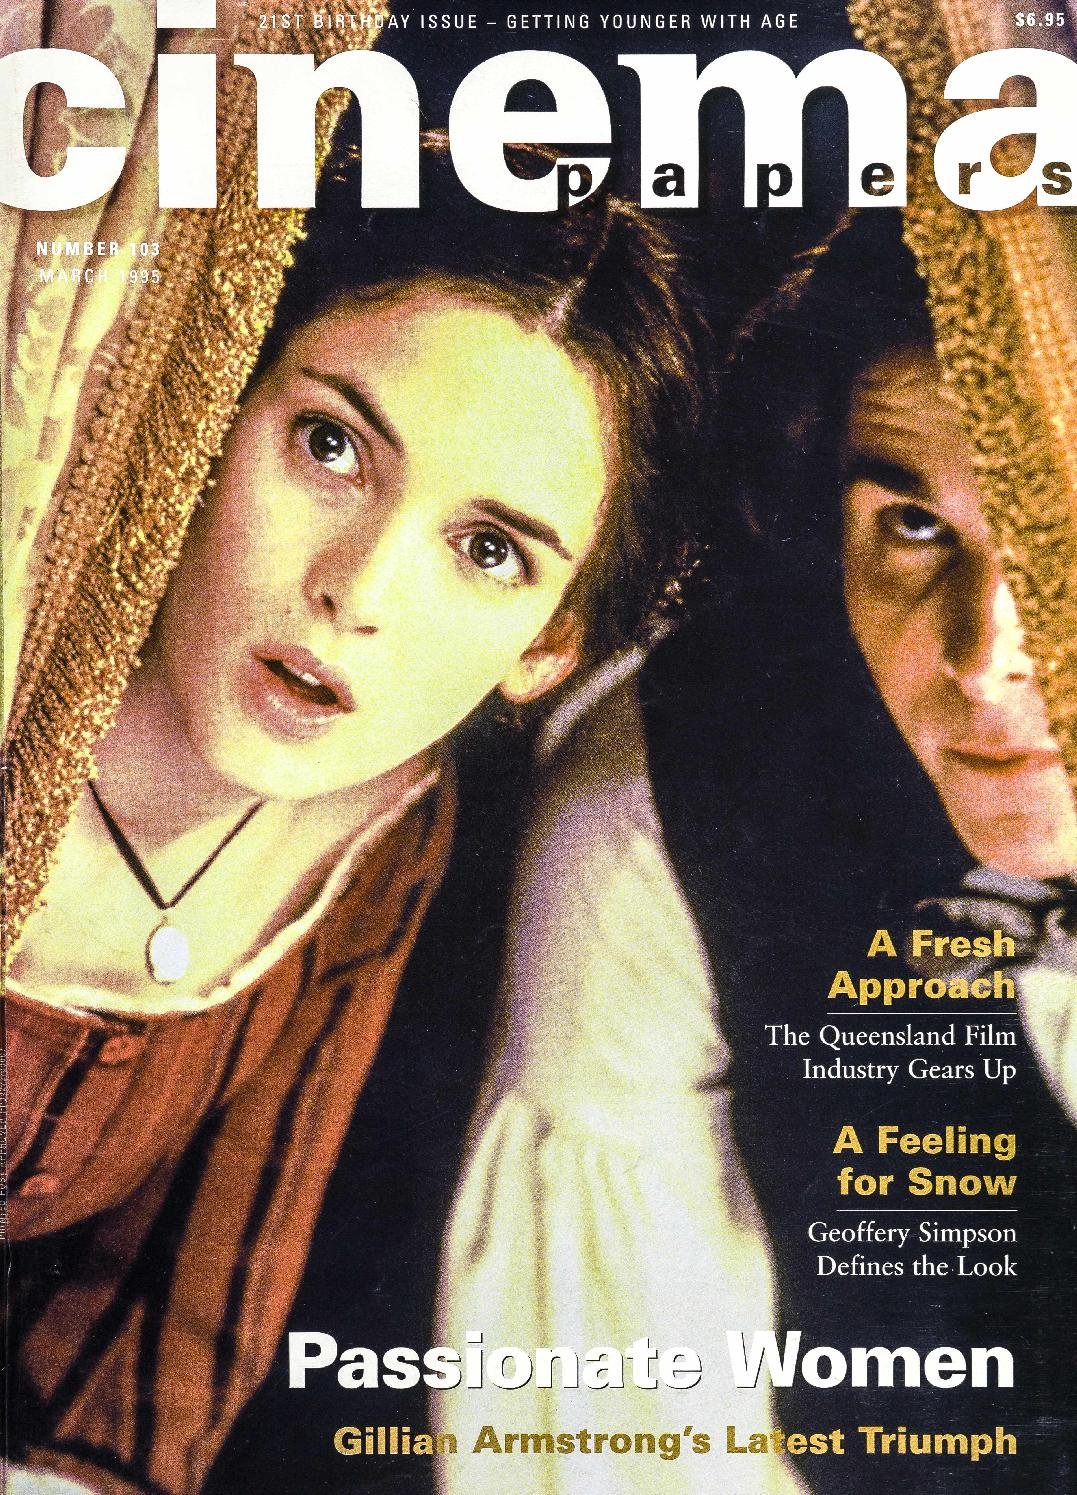 La Chambre Verte Truffaut Streaming Cinema Papers No 103 March 1995 By Uow Library Issuu